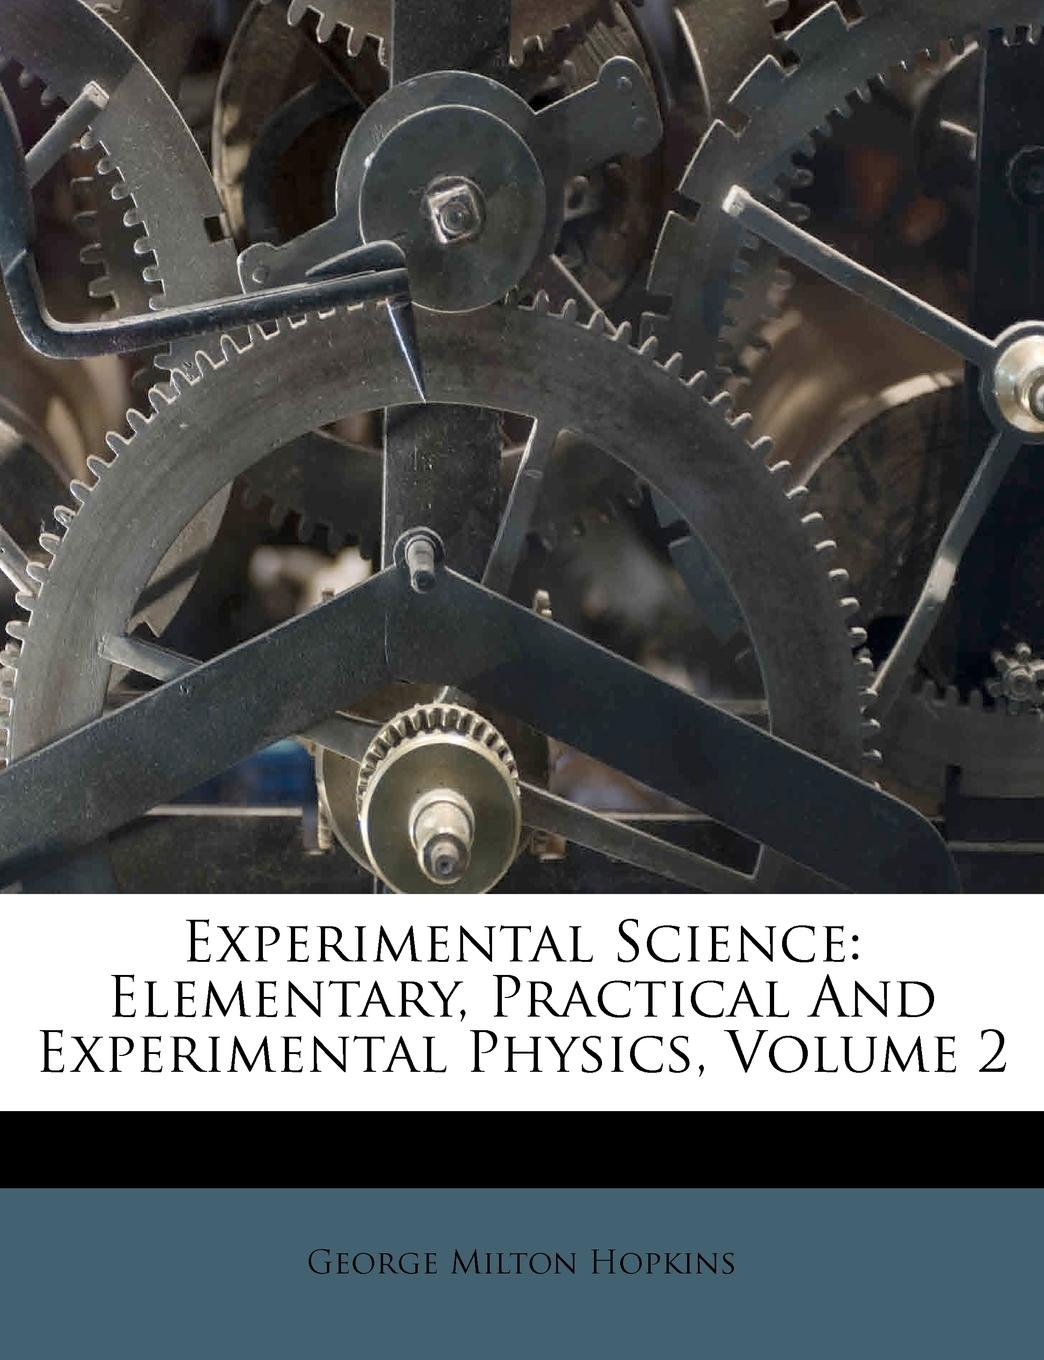 Read Online Experimental Science: Elementary, Practical And Experimental Physics, Volume 2 pdf